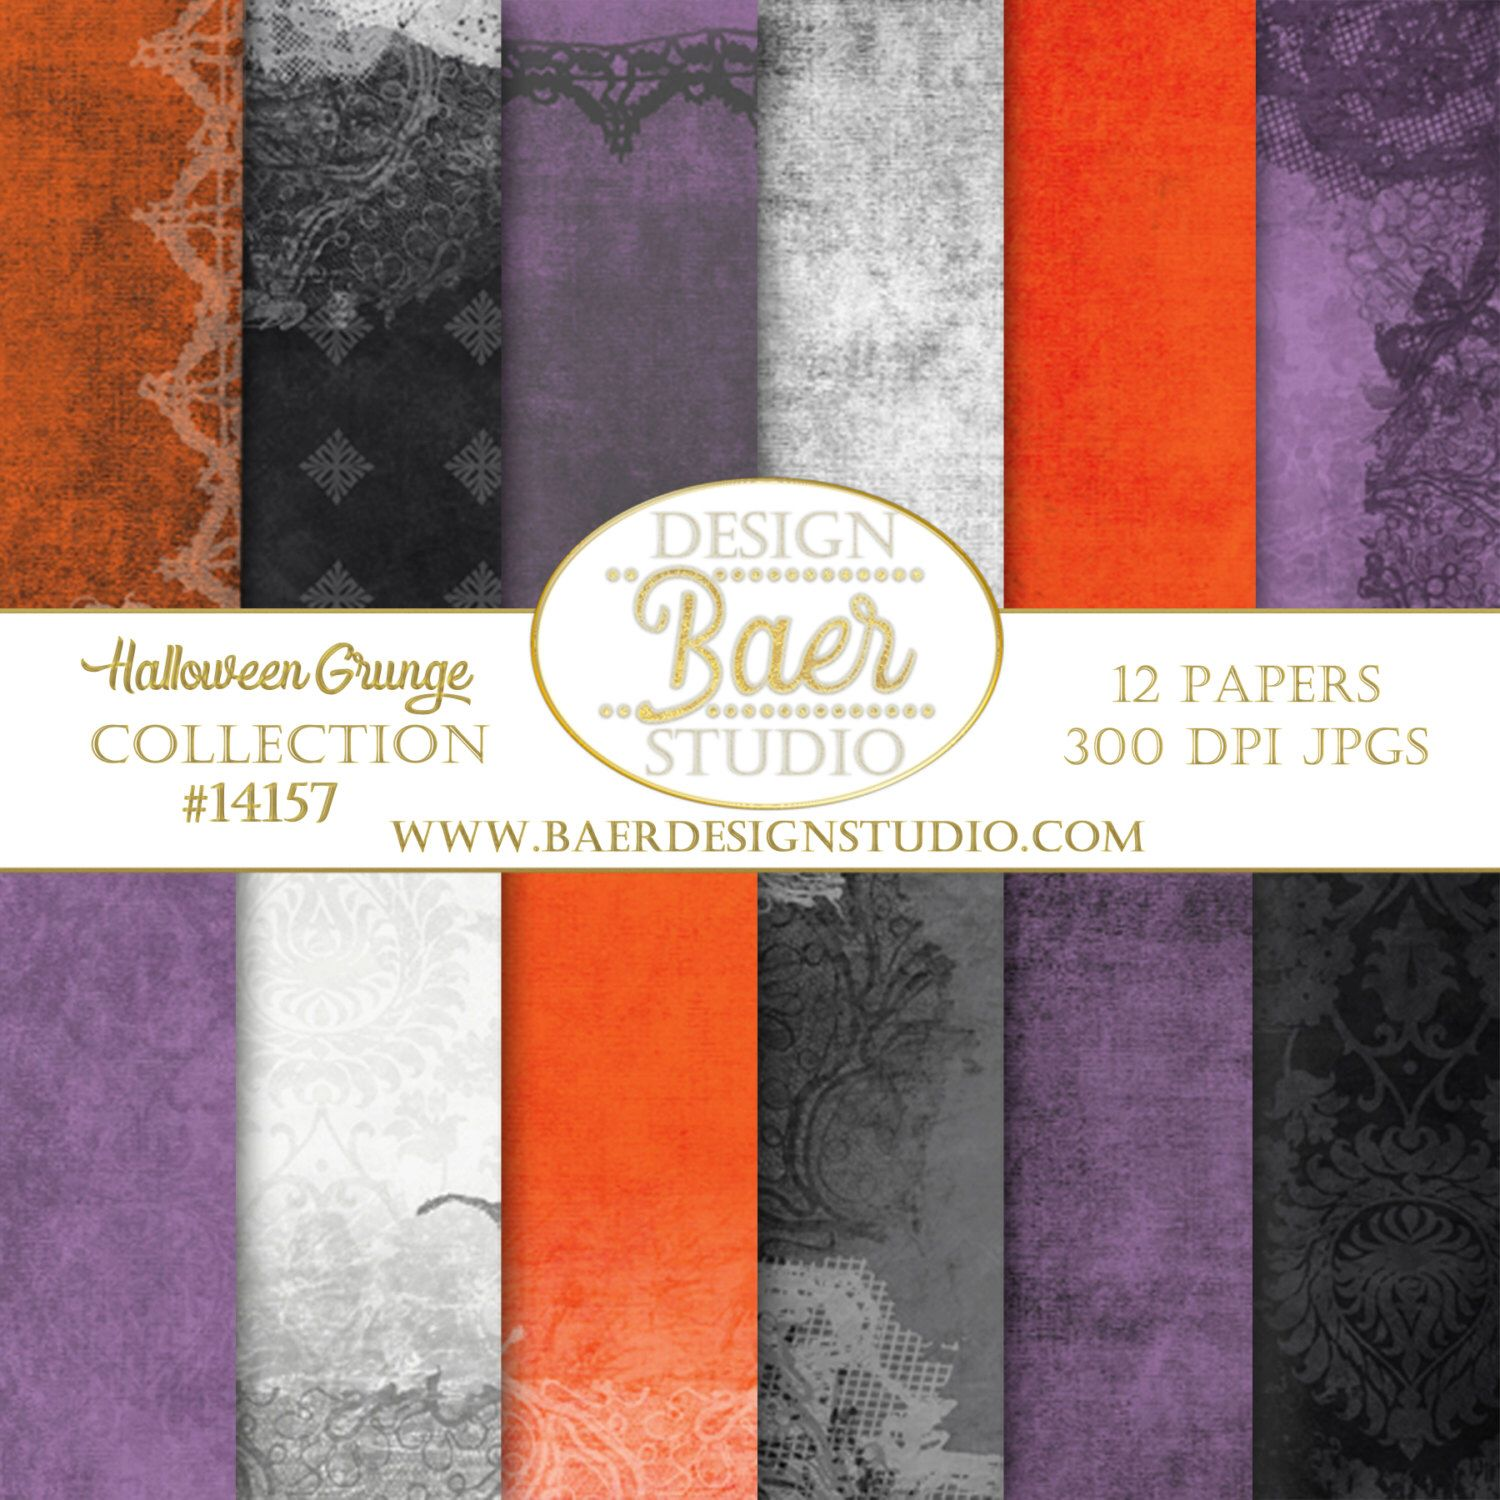 Spooky Halloween Grunge Lace Digital Paper For Creating Planner Stickers Digital Backgrounds For Scrapboo Halloween Digital Digital Paper Orange Digital Paper